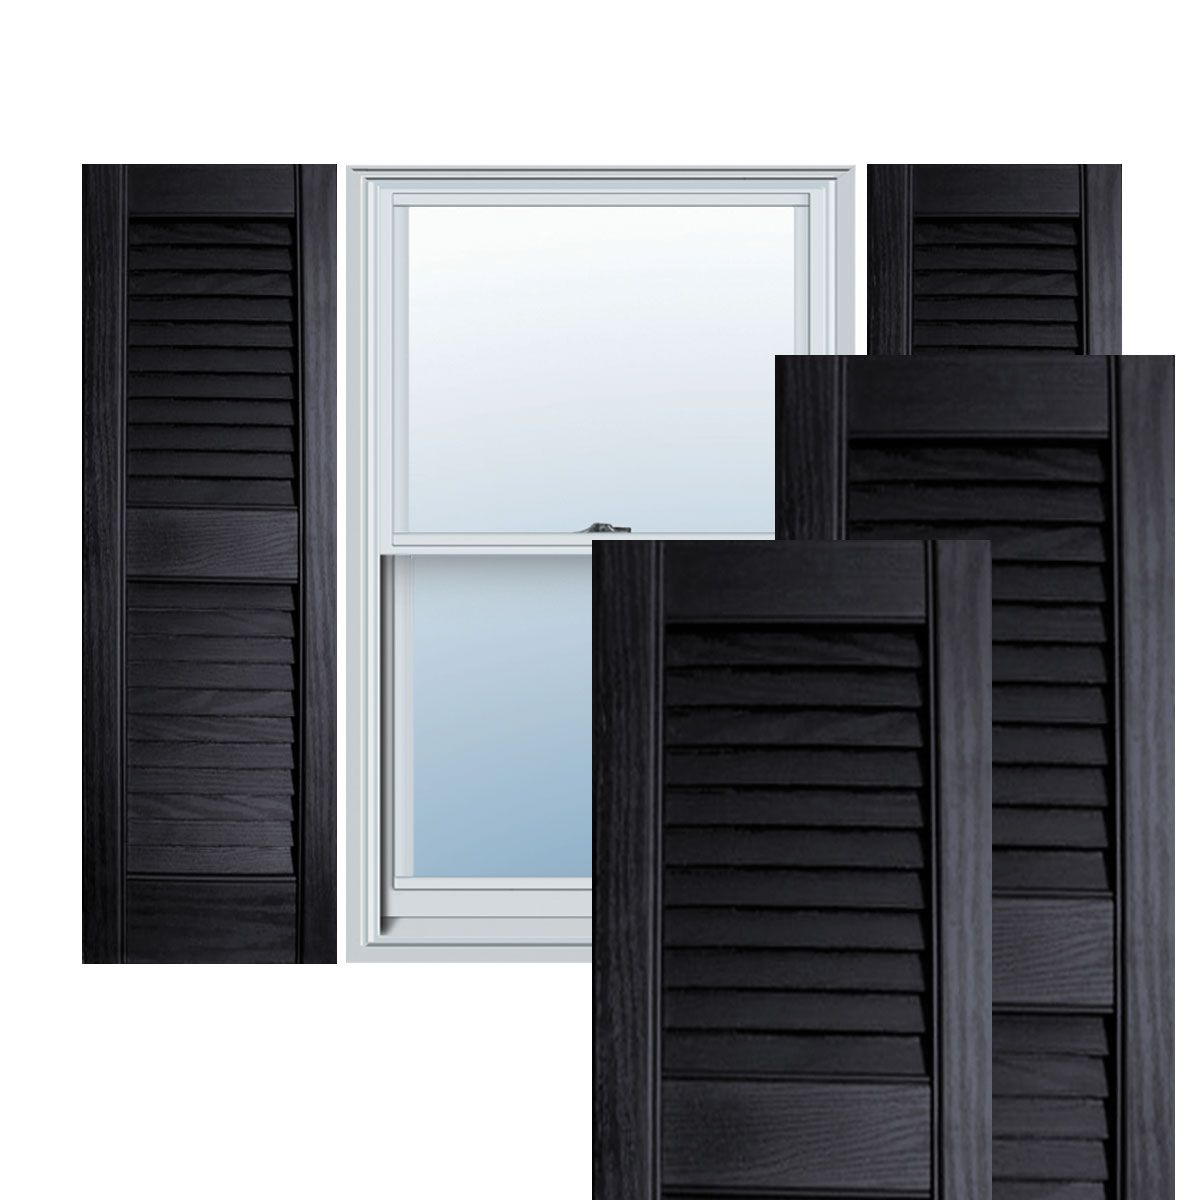 12 Inch X 59 Inch Builders Choice Vinyl Open Louver Window Shutters W Shutter Spikes Screws Per Pair Black Window Shutters Interior Window Shutters Exterior Vinyl Shutters